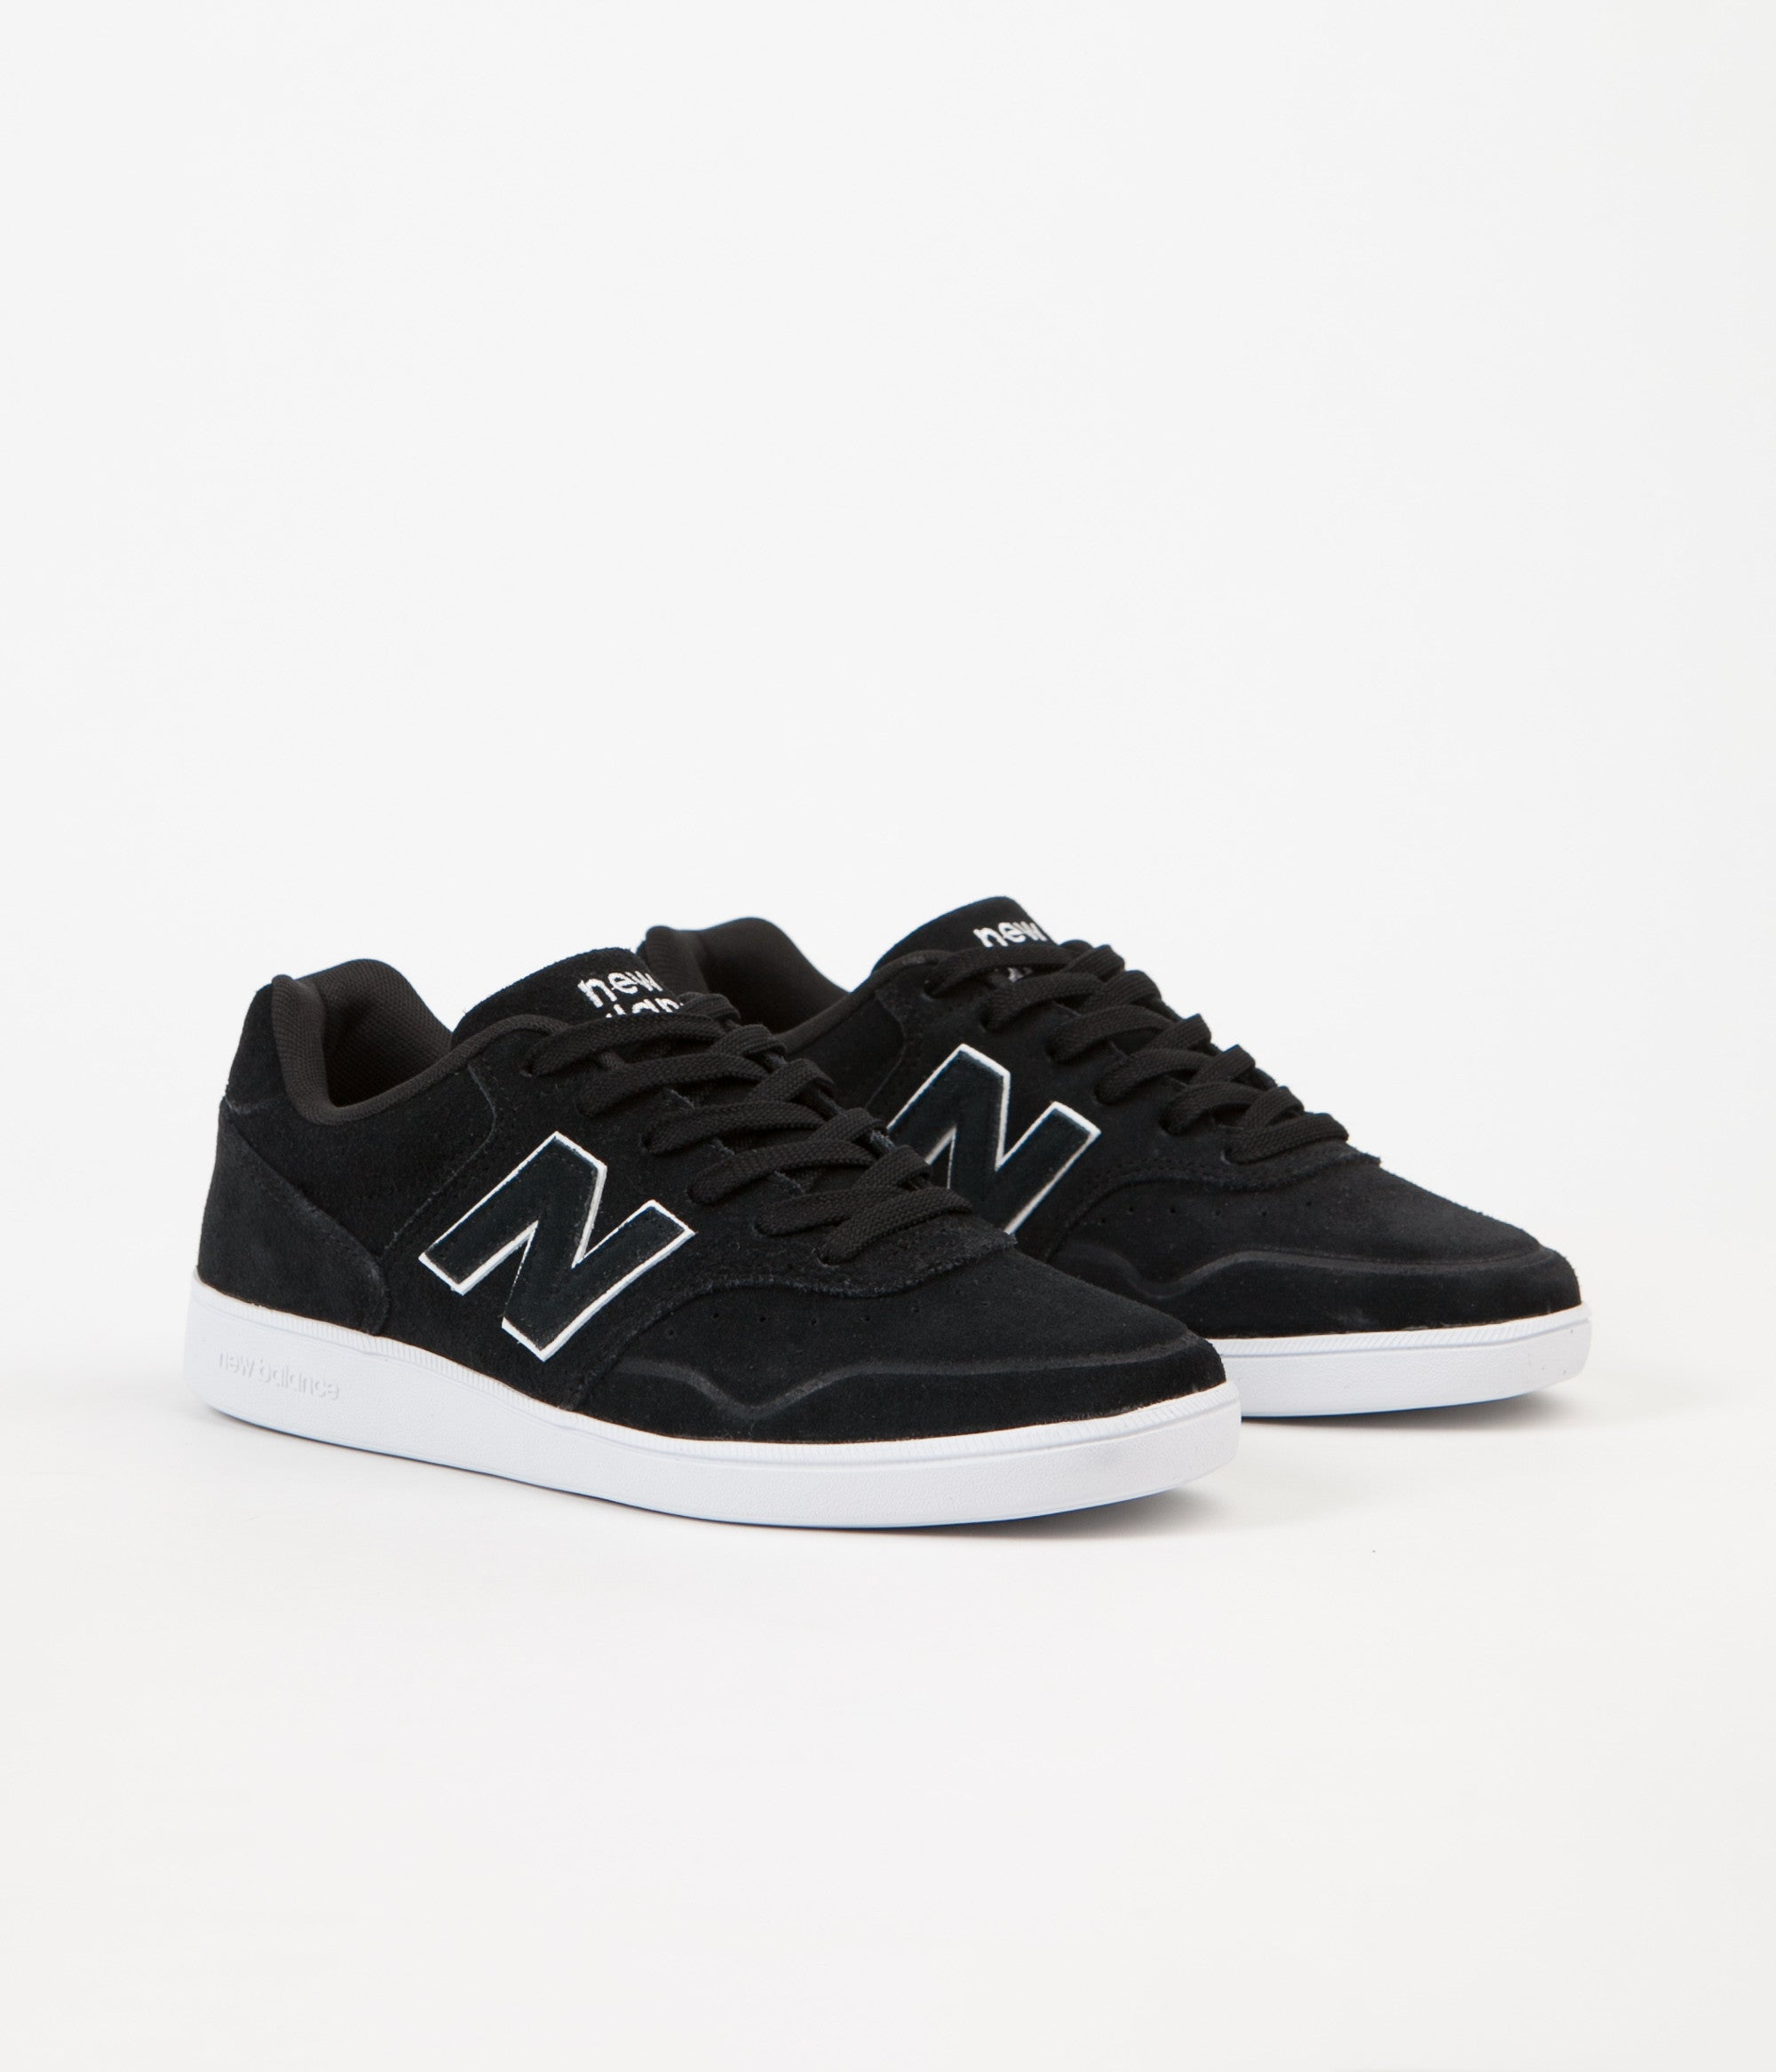 New Balance 288 Suede Shoes - Black / White | Flatspot